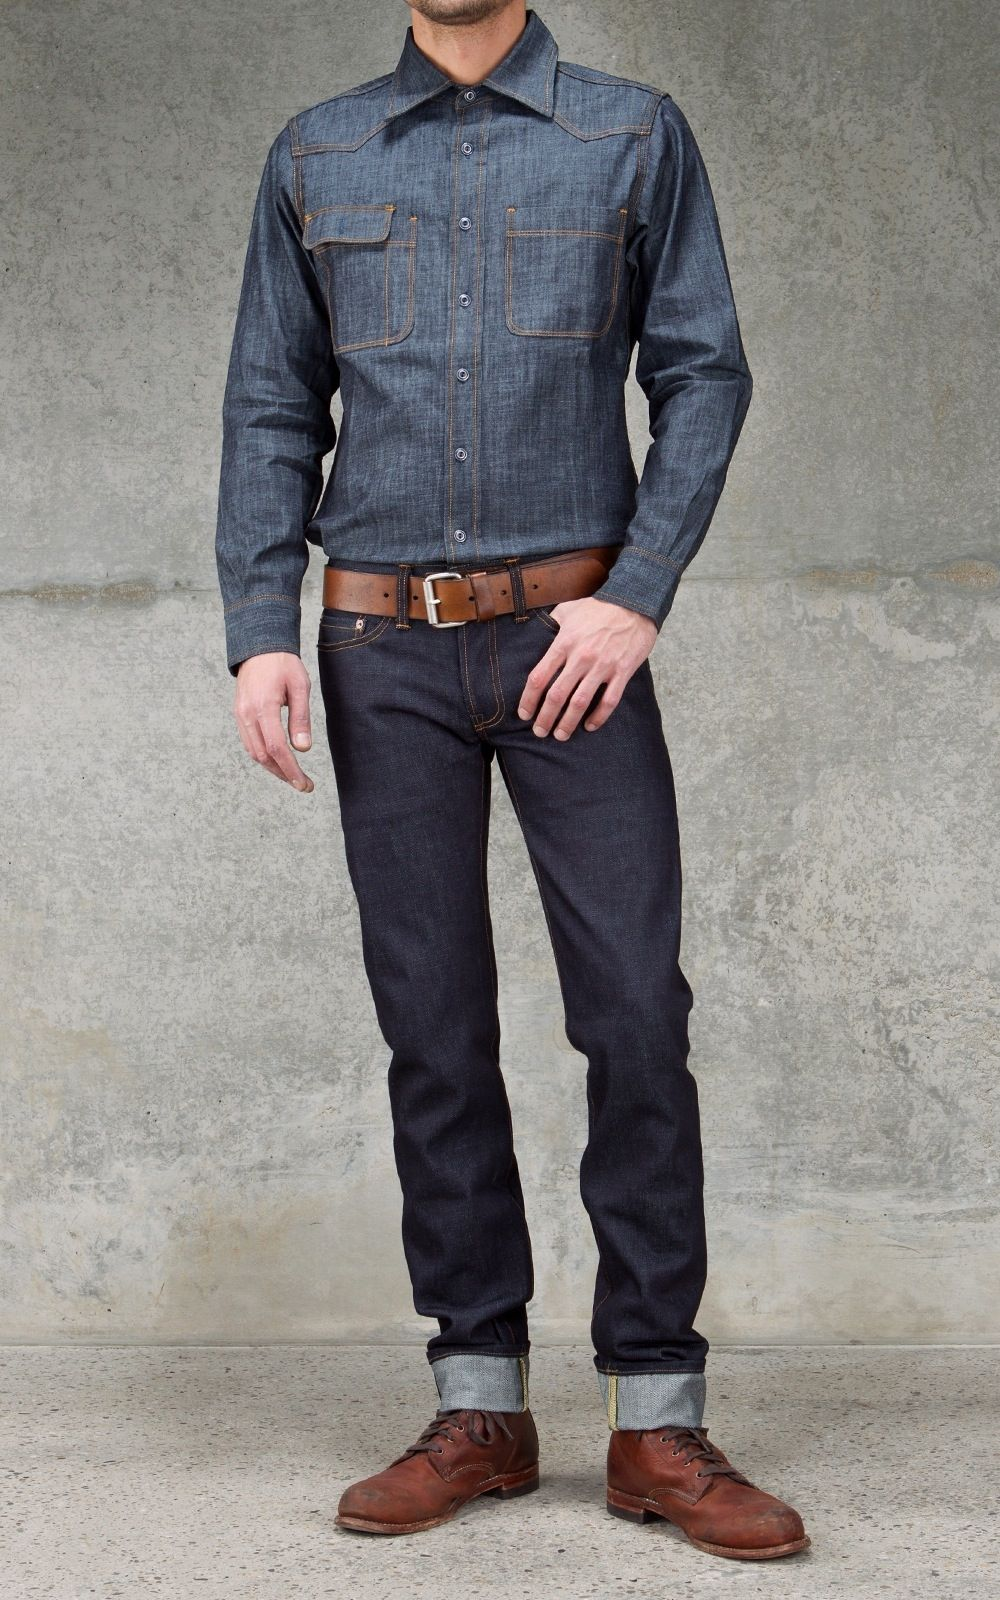 2e6bb2eb98 I think these are Wolverine 1000 Mile boots) with Tellason denim ...